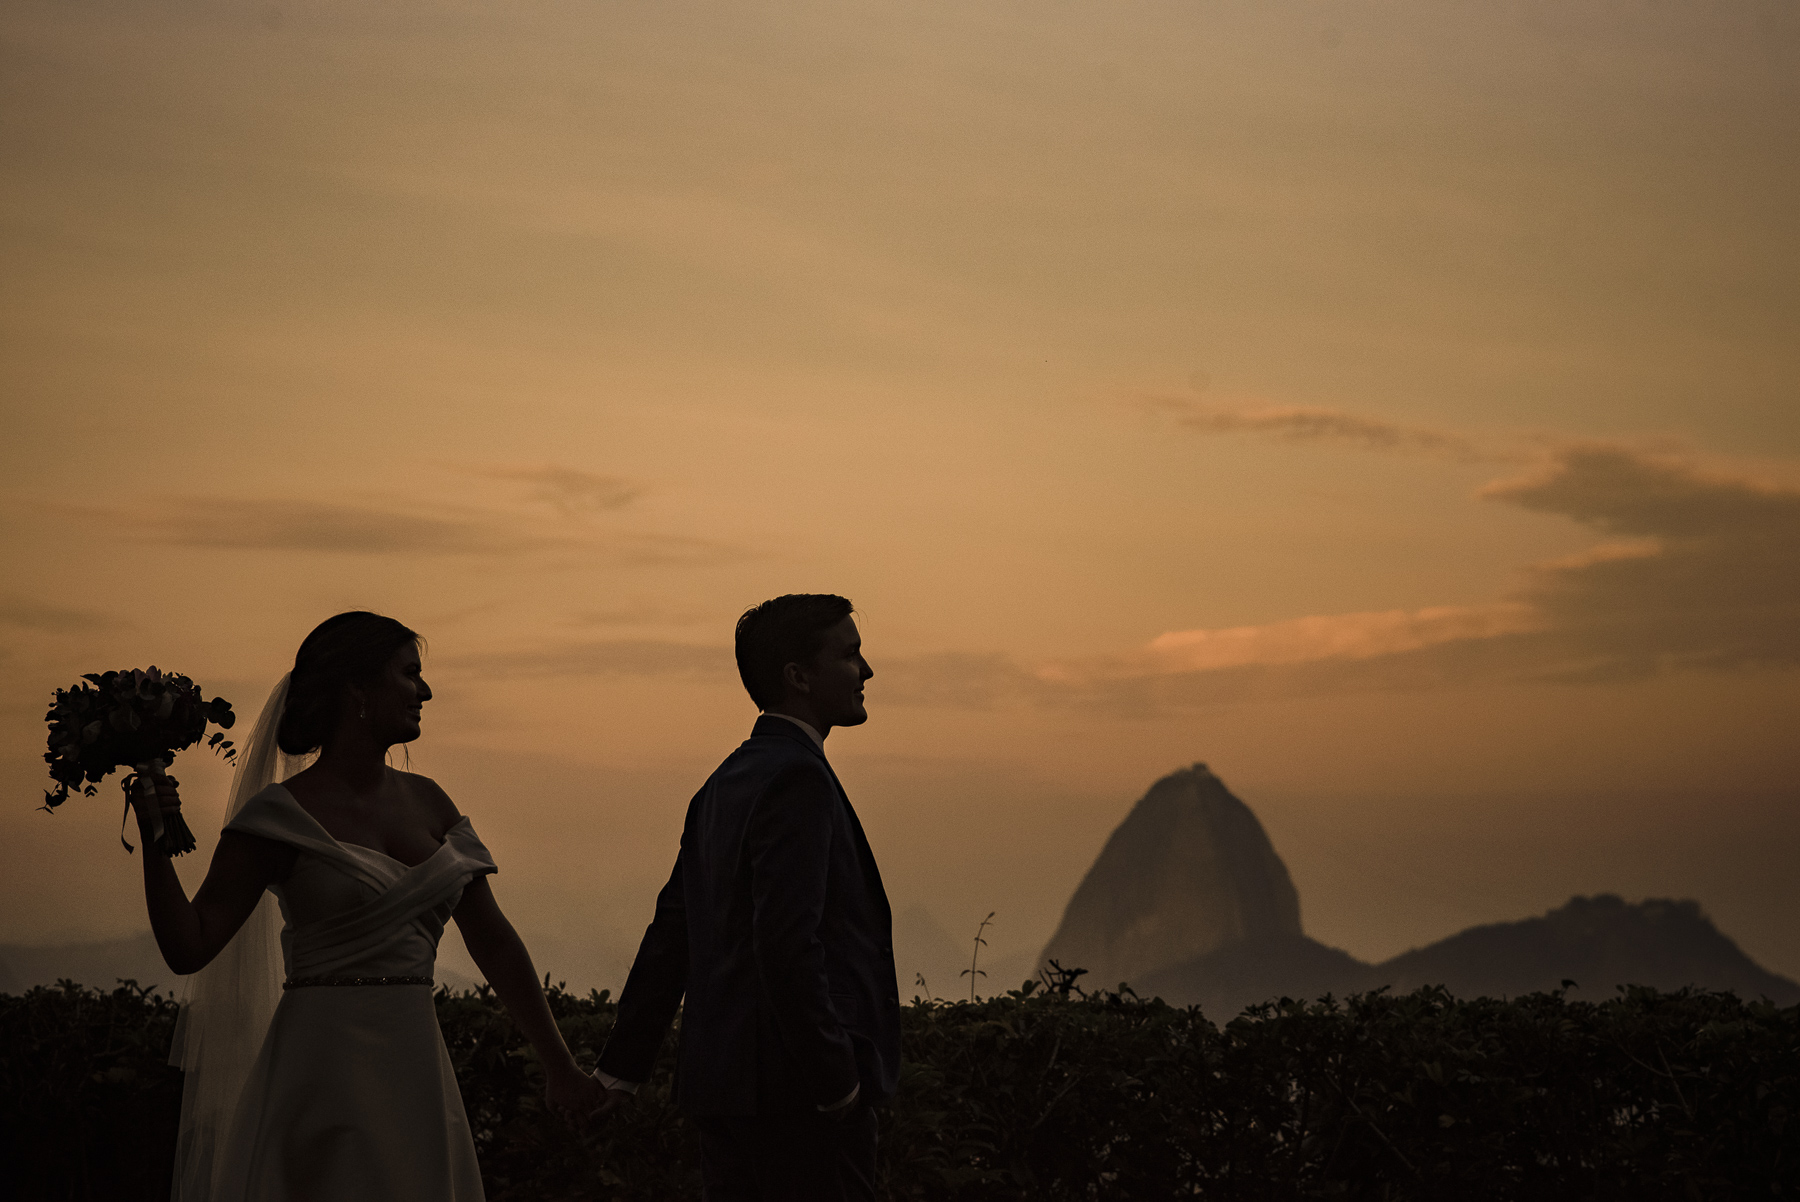 Casa de Santa Teresa, Rio de Janeiro, Brazil Wedding Couple Portrait | The bride and groom walk hand-in-hand